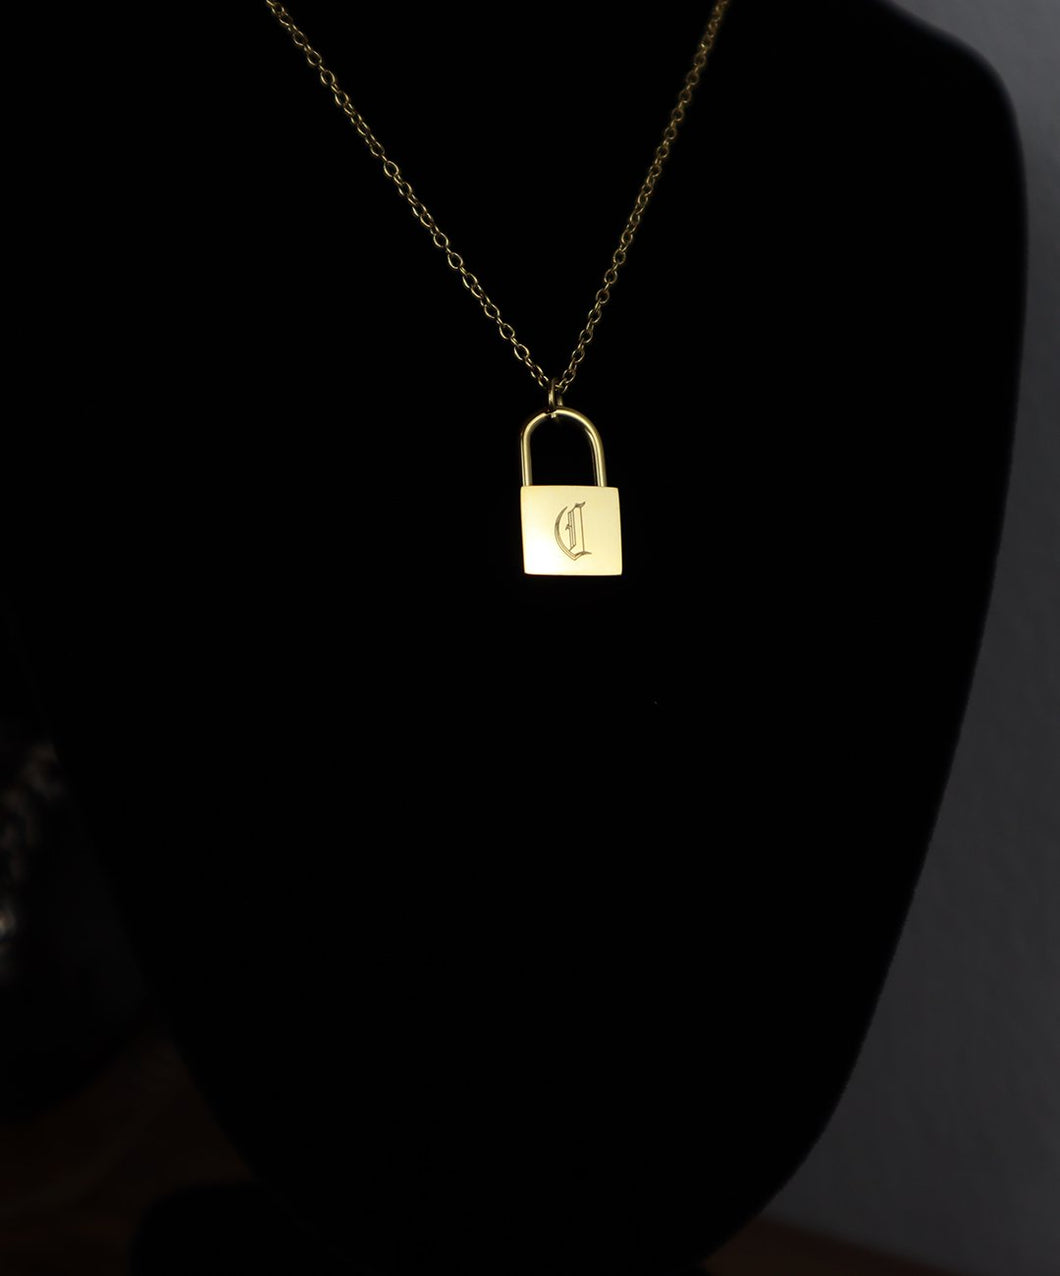 18k Gold Lock Necklace: C